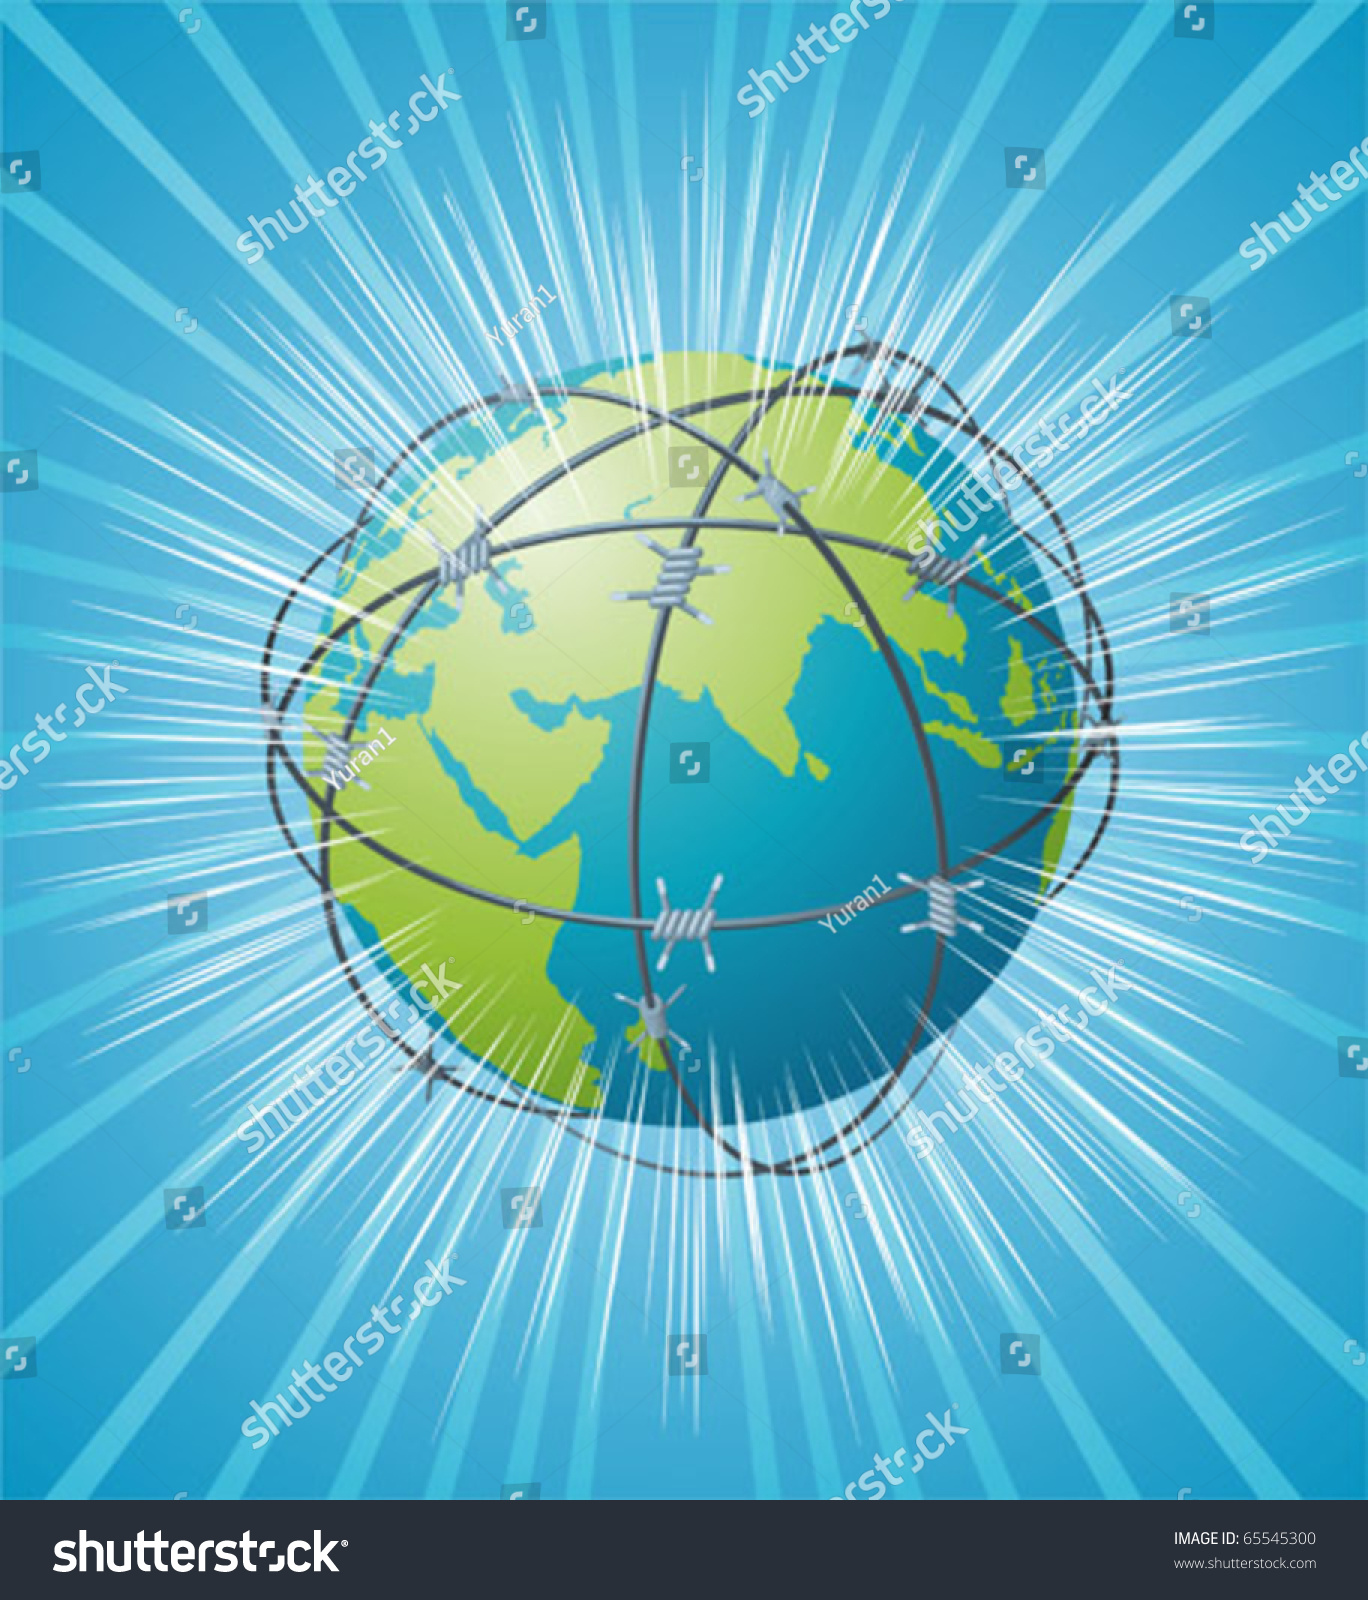 Earth Swathed By Barbed Wire Stock Vector 65545300 - Shutterstock